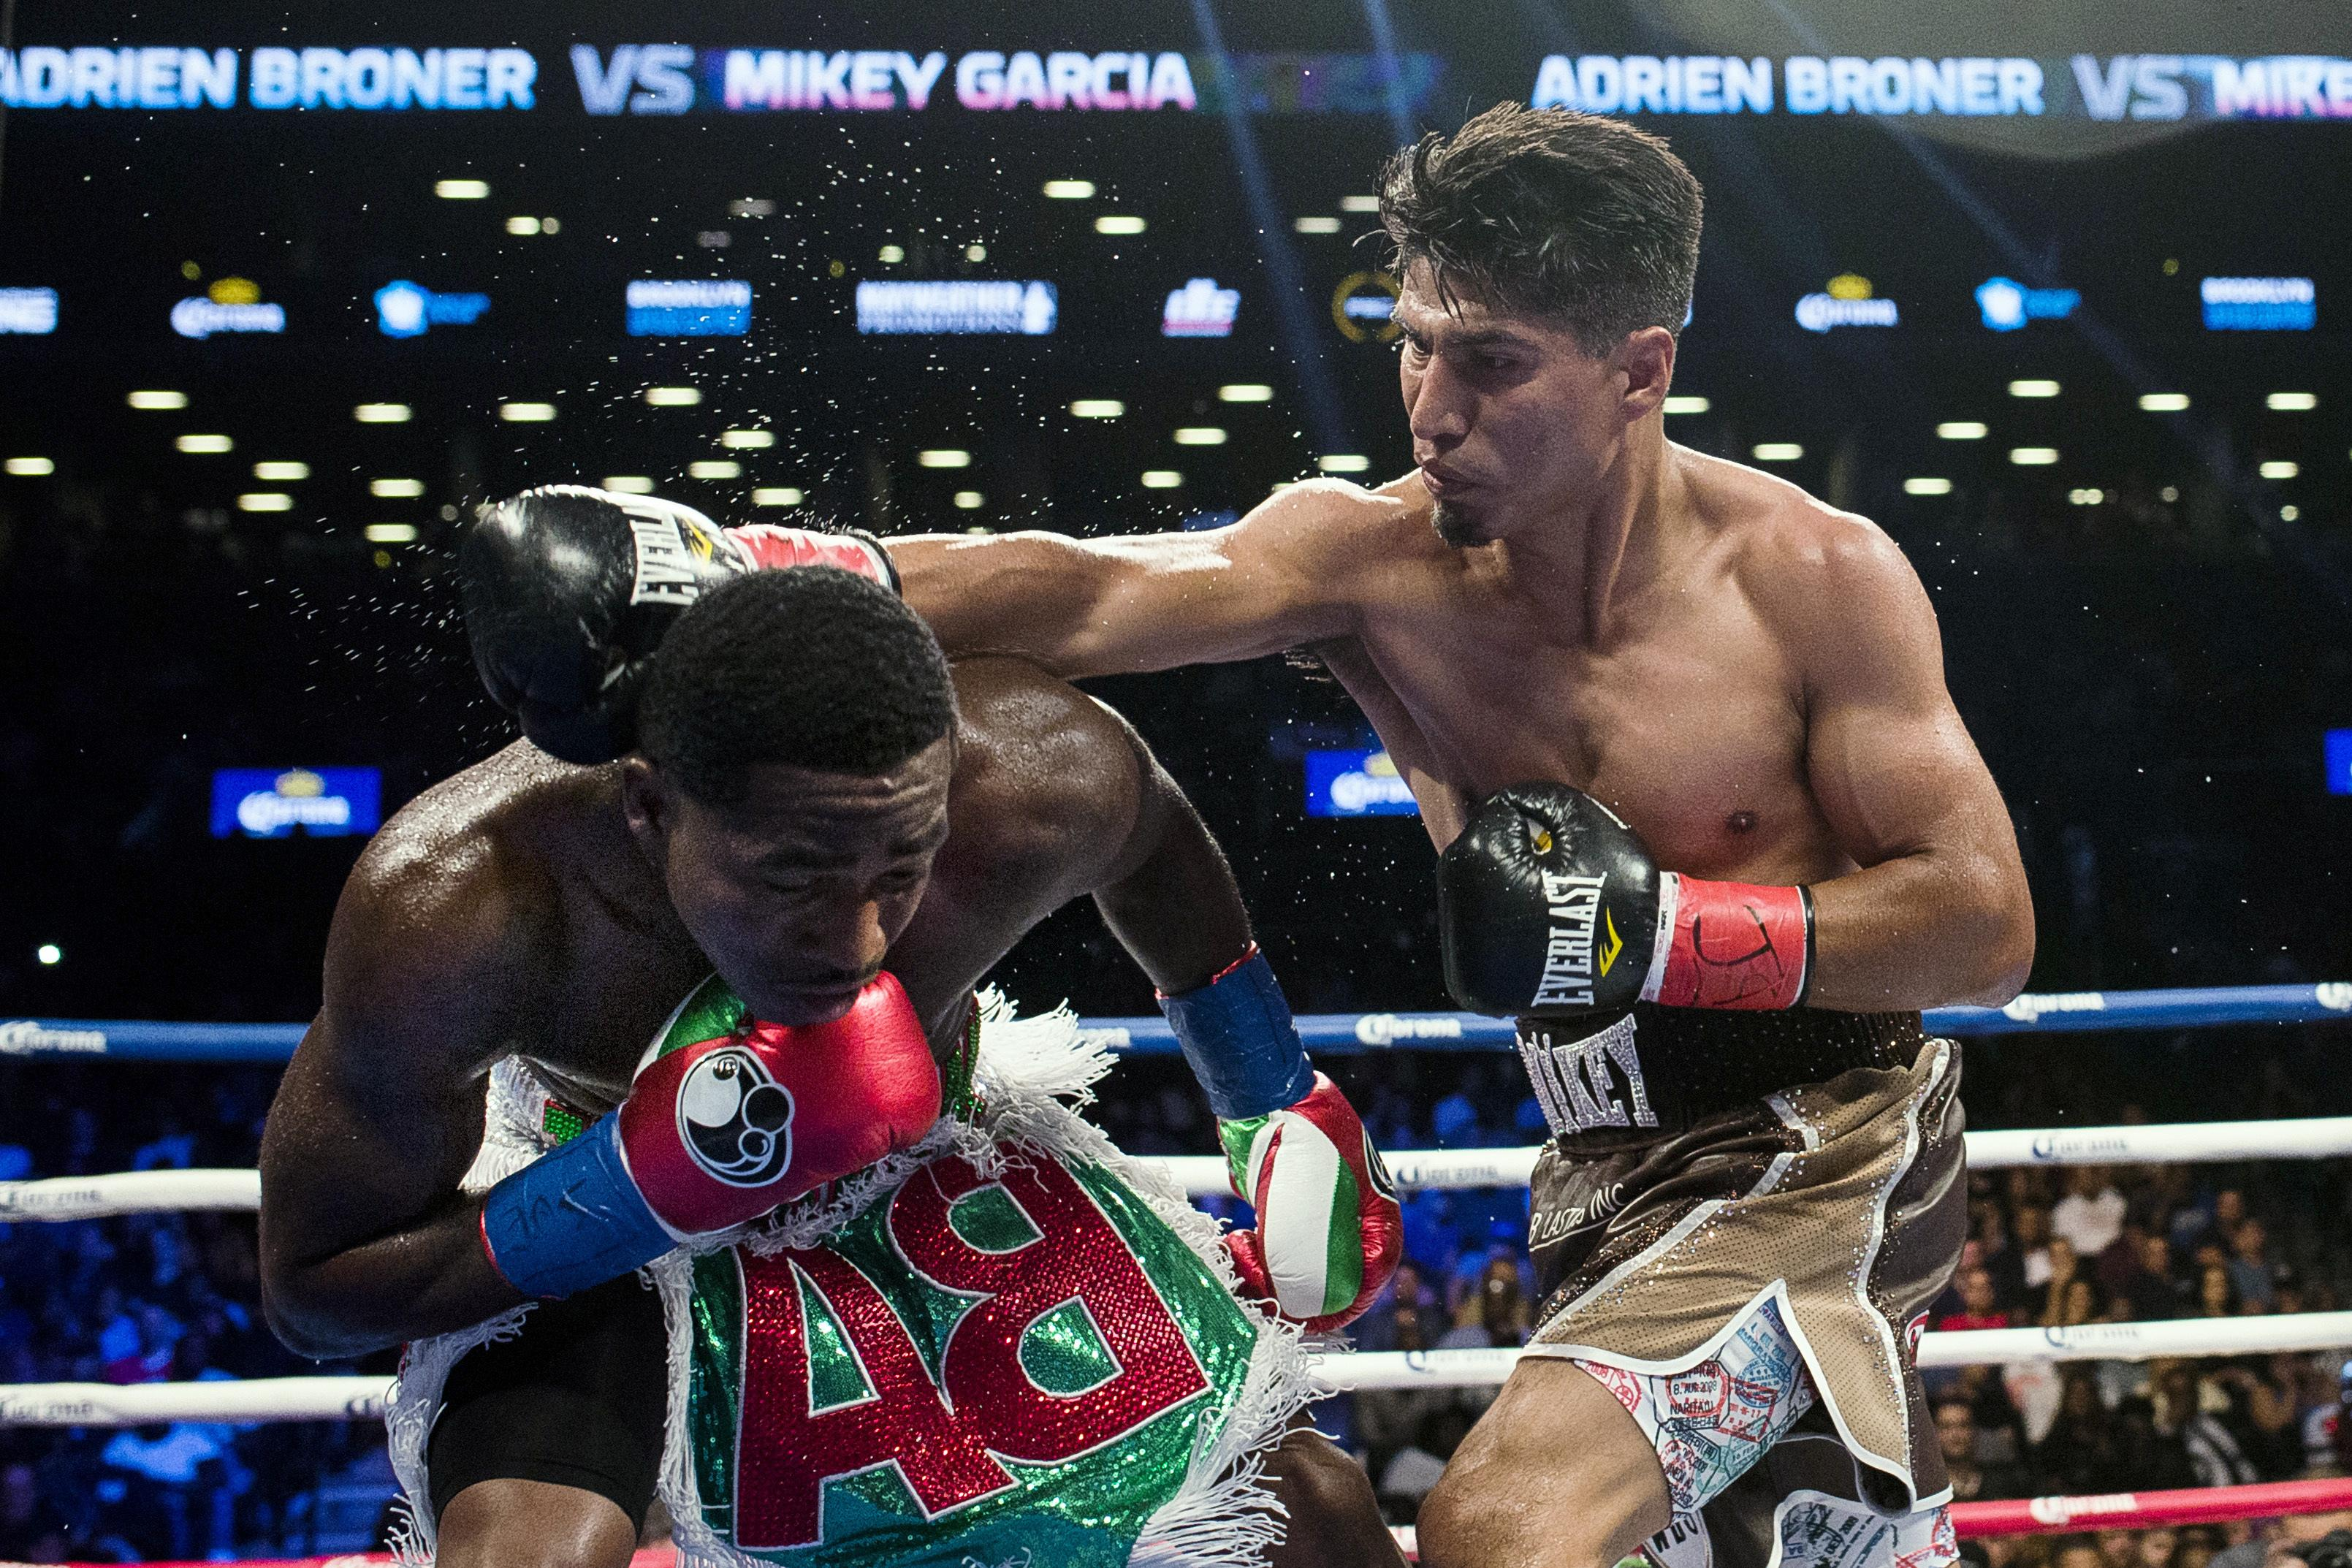 The 28-year-old last fought against Mikey Garcia in an eventual defeat last July